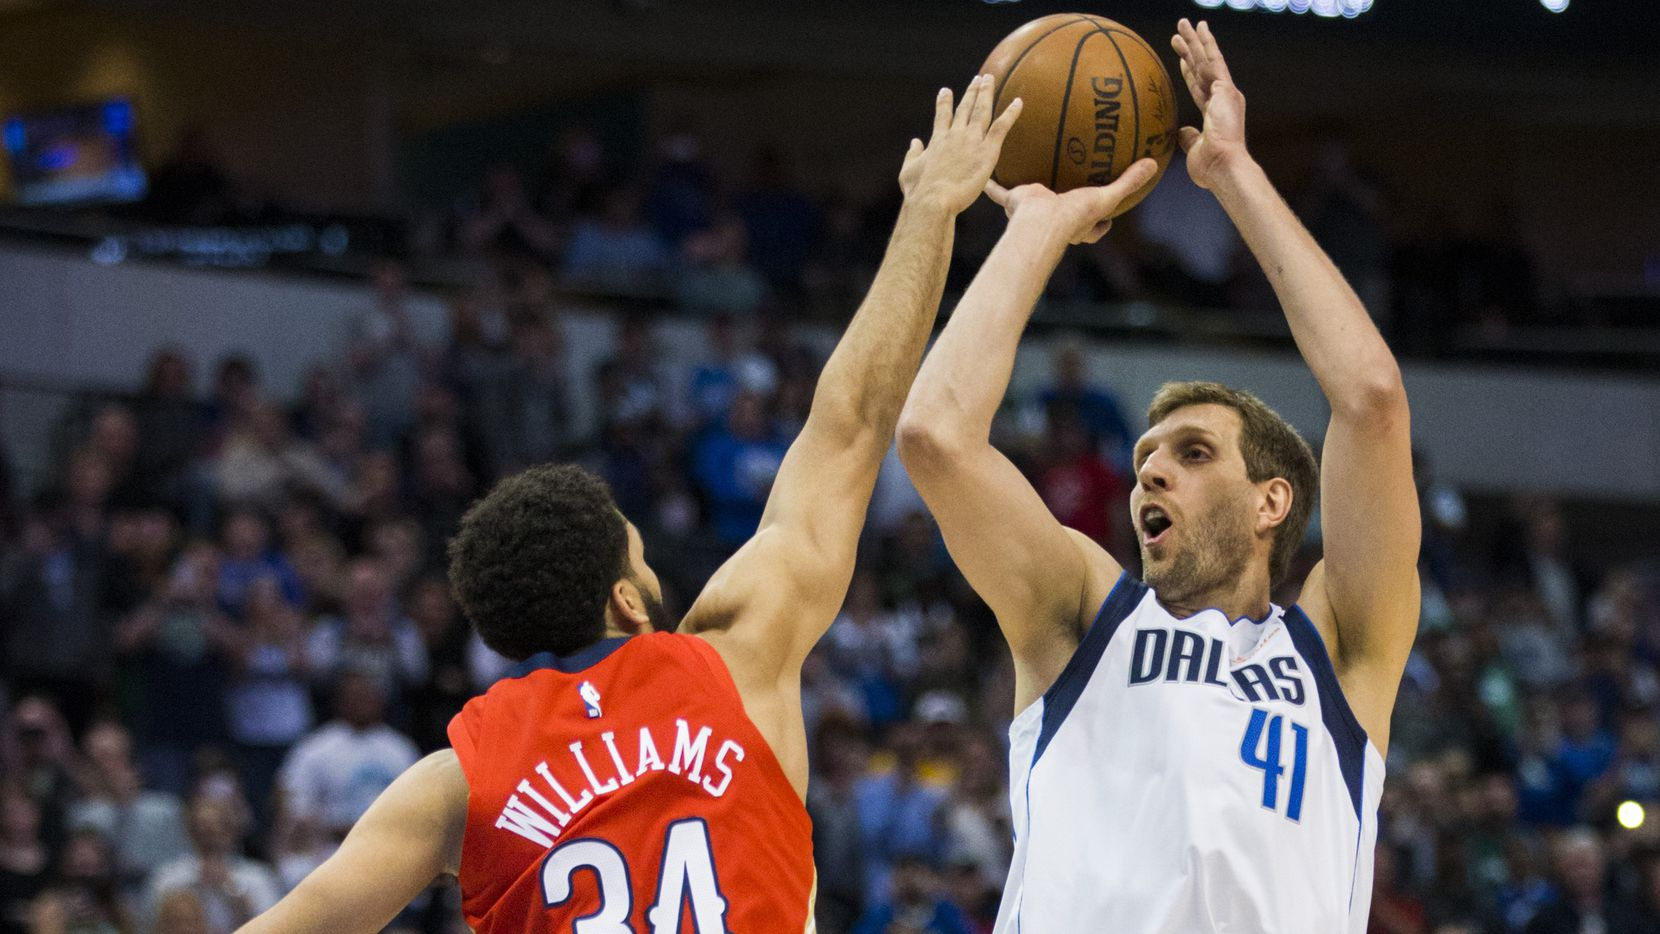 Dallas Mavericks forward Dirk Nowitzki (41) takes a shot to pass Wilt Chamberlain for the 6th NBA all-time scoring record during the first quarter of an NBA game between the Dallas Mavericks and the New Orleans Pelicans on Monday, March 18, 2019 at American Airlines Center in Dallas. (Ashley Landis/The Dallas Morning News)